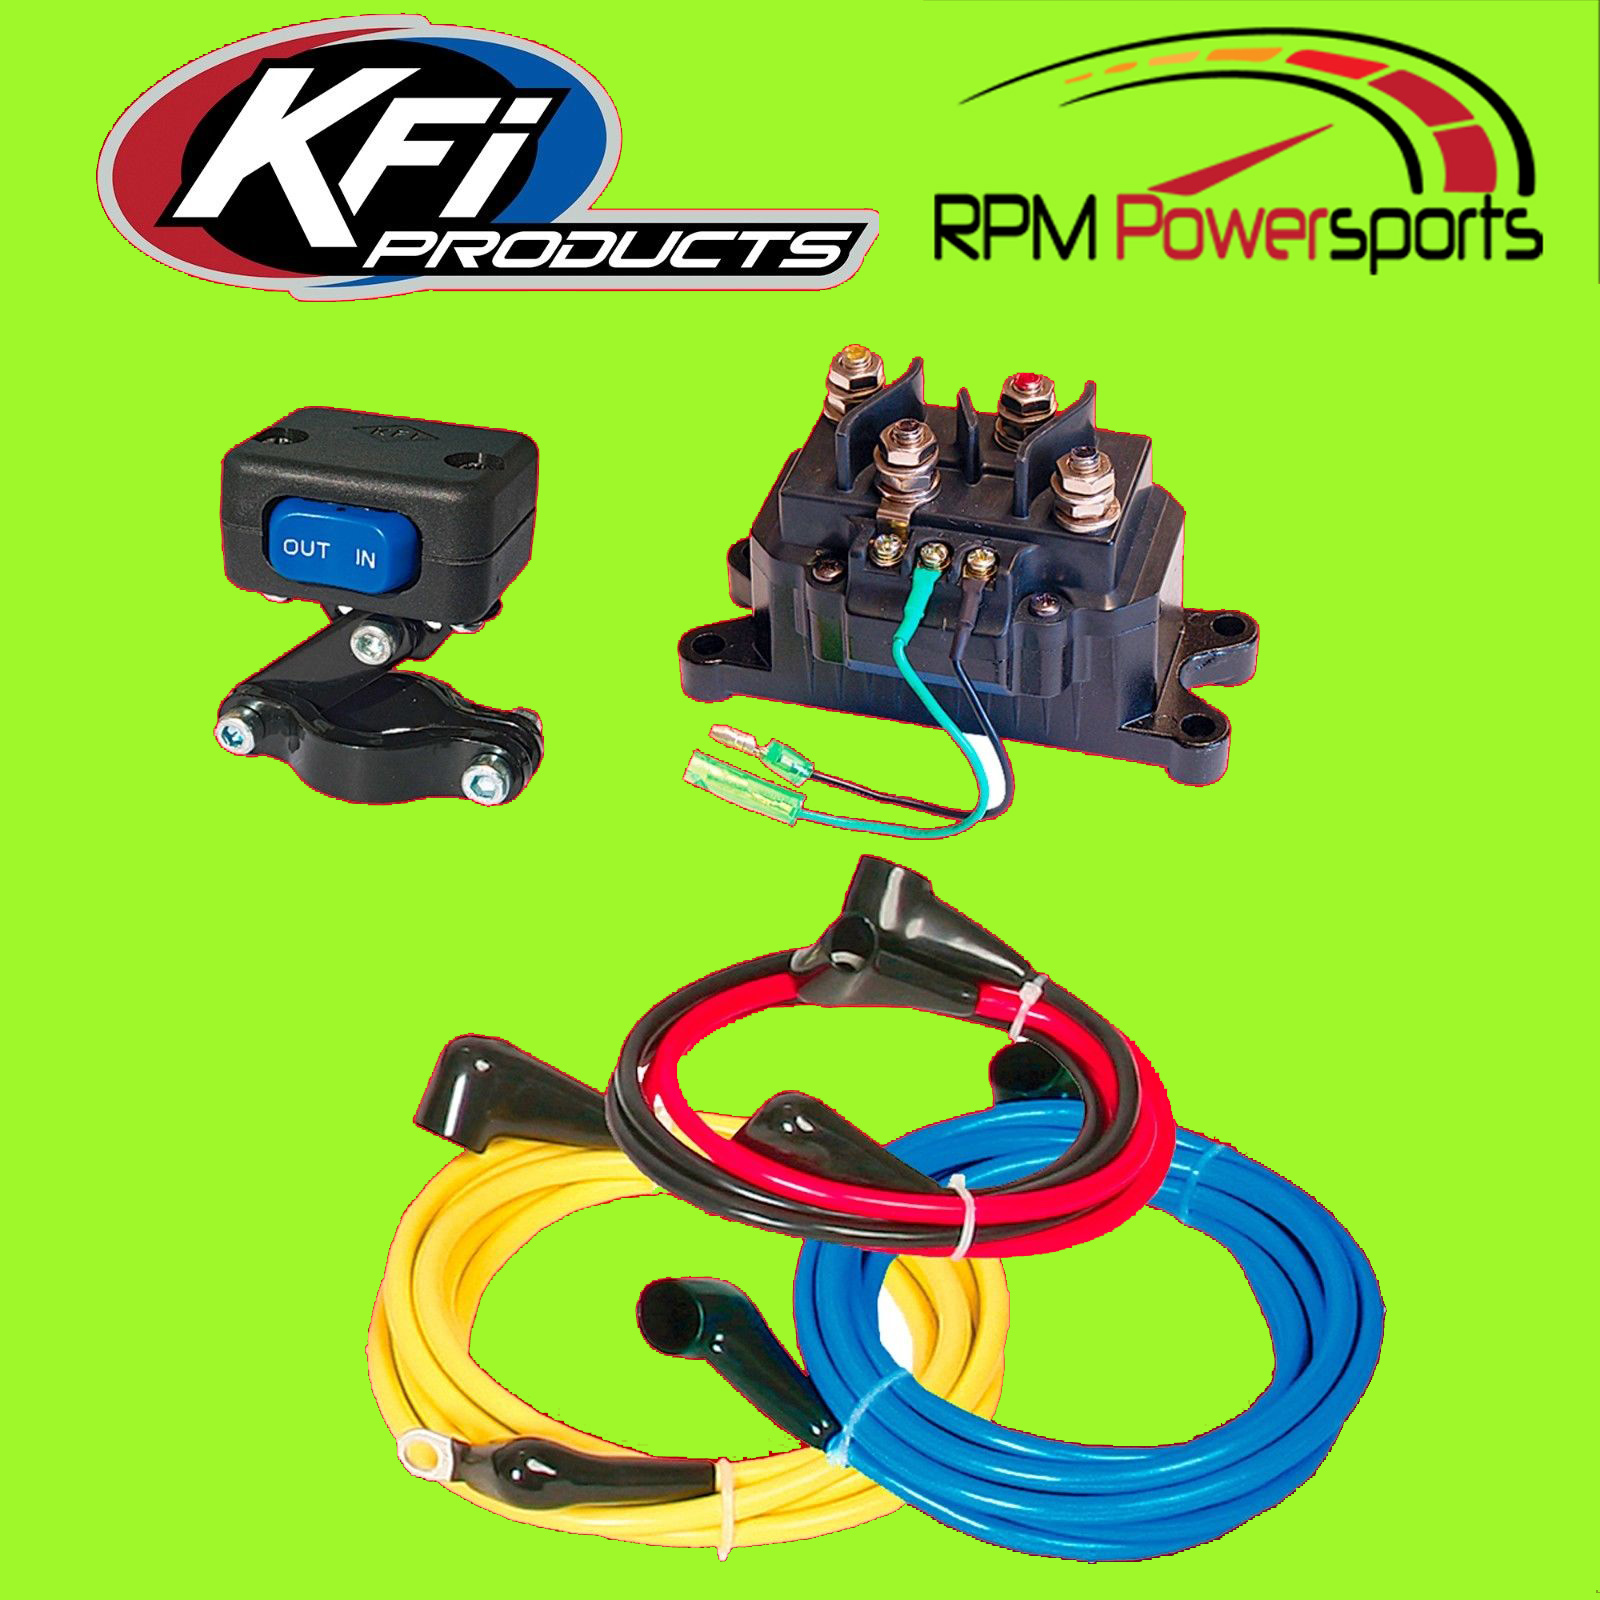 KFI COMPLETE WIRE KIT